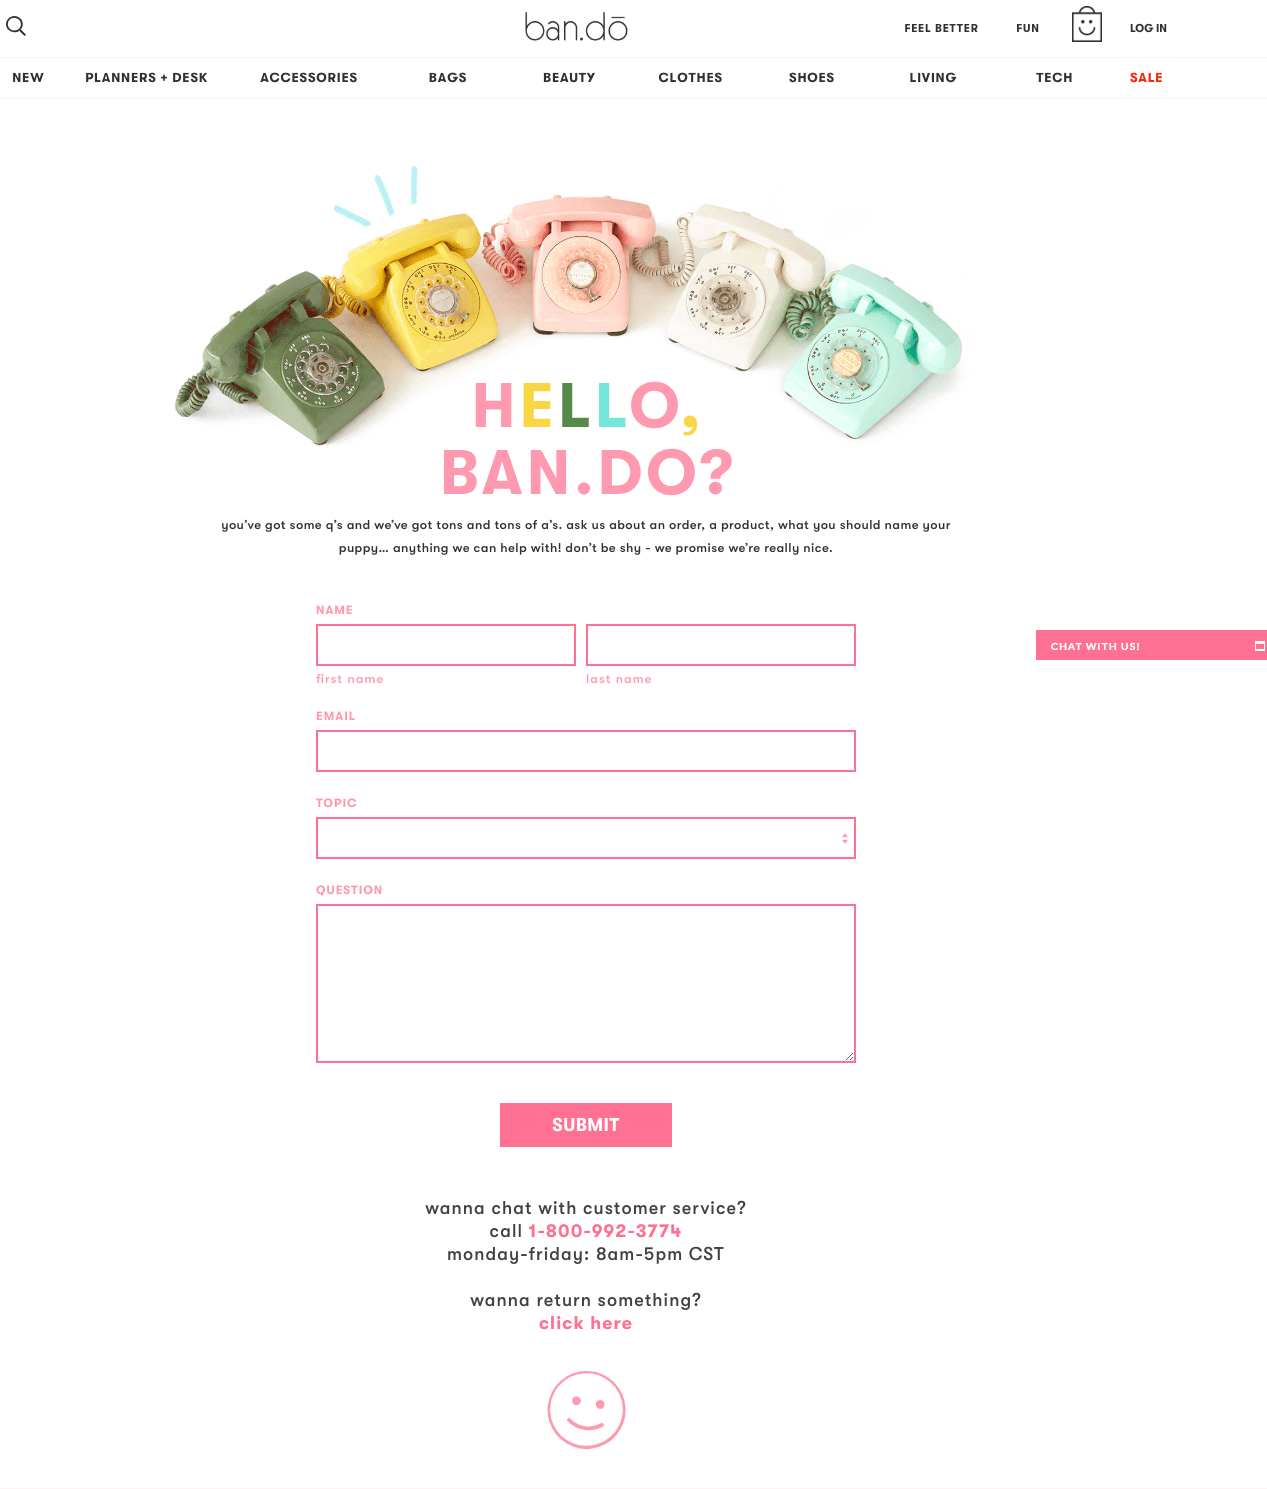 bando contact us-page-update